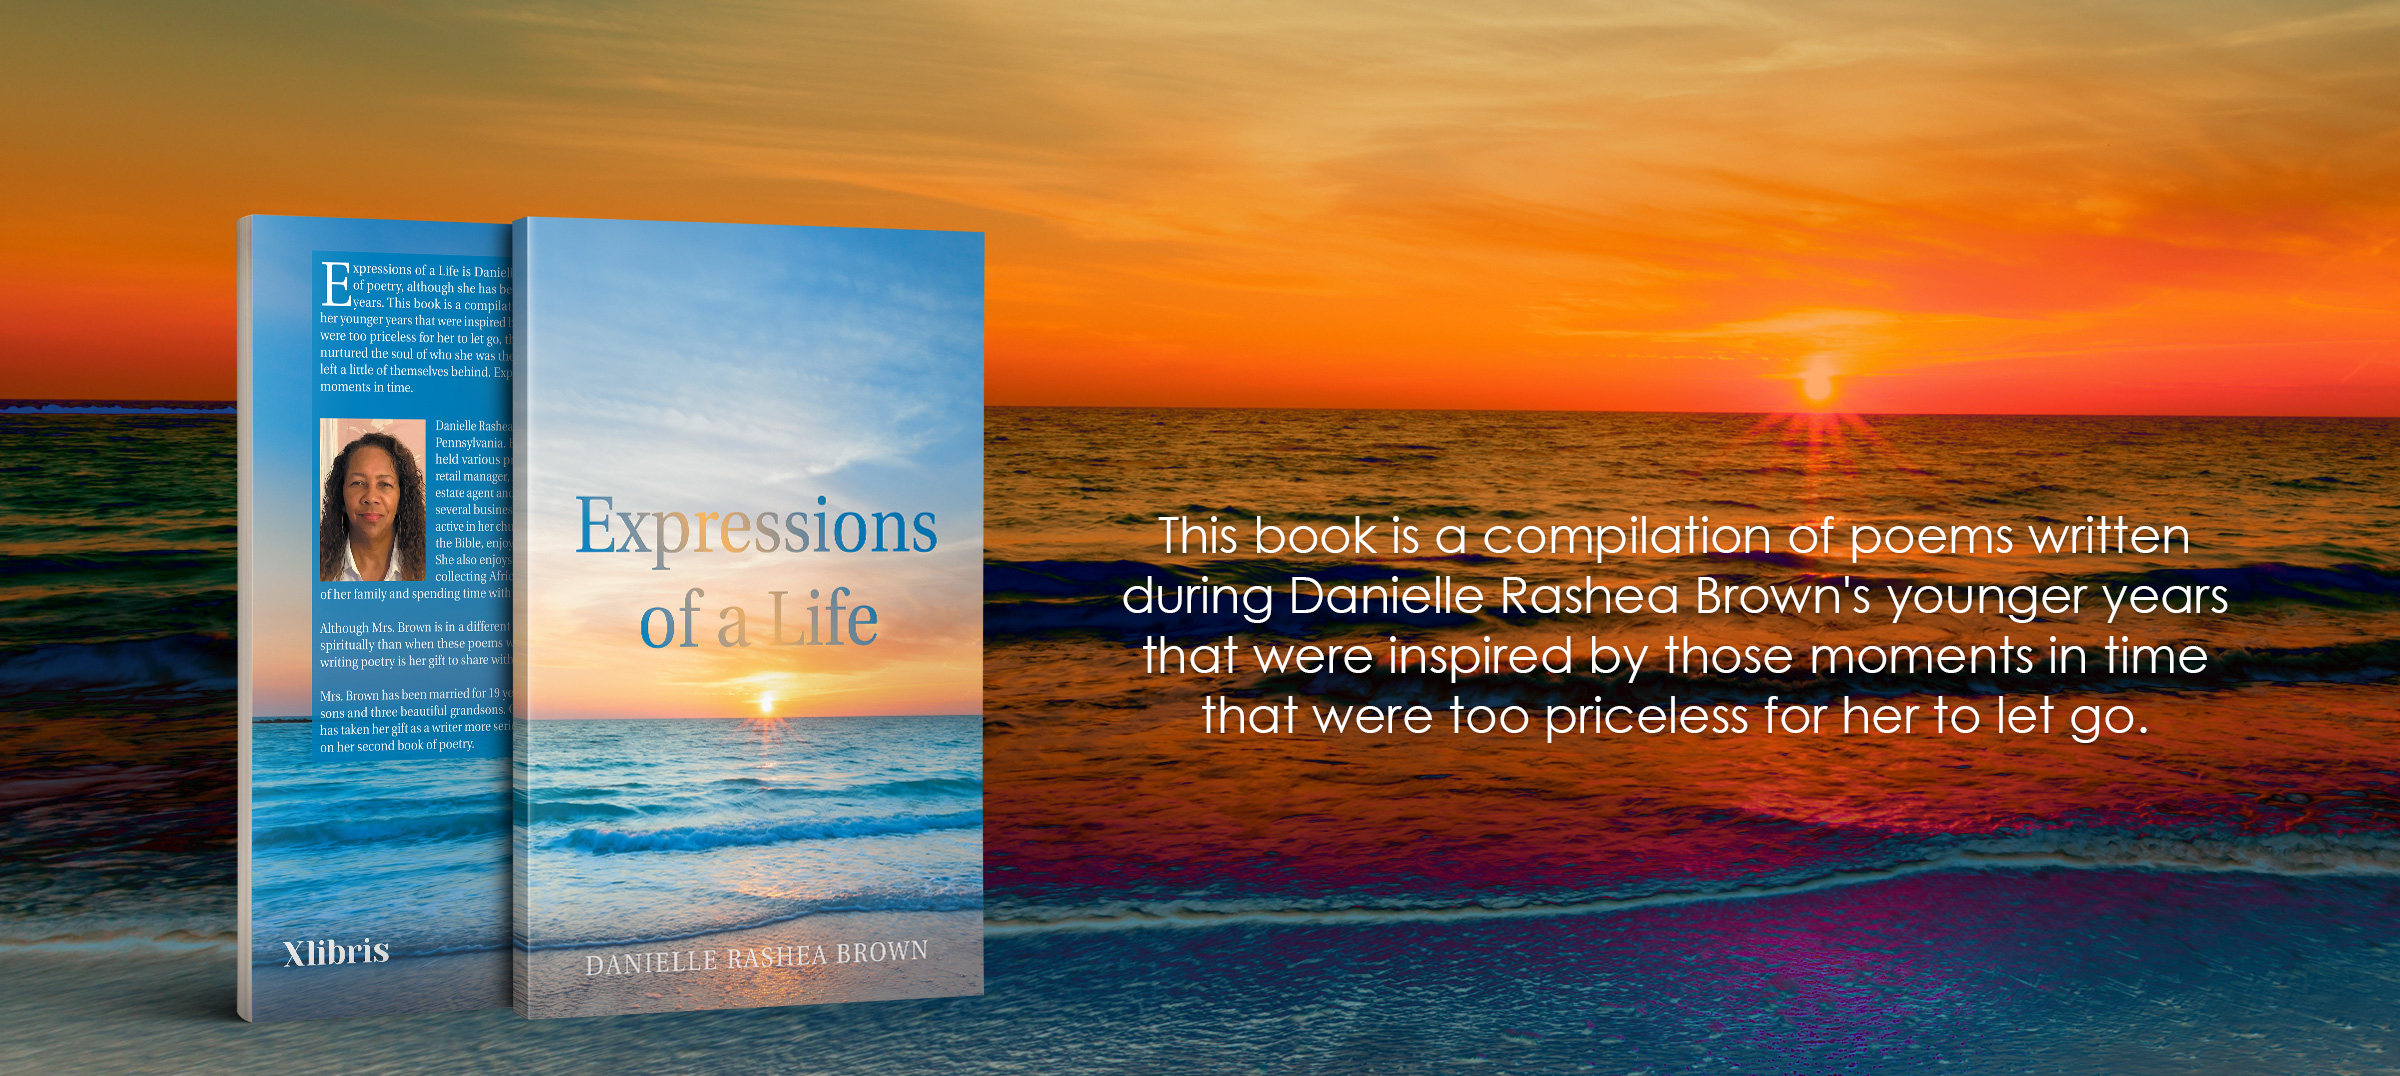 Expressions of a Life